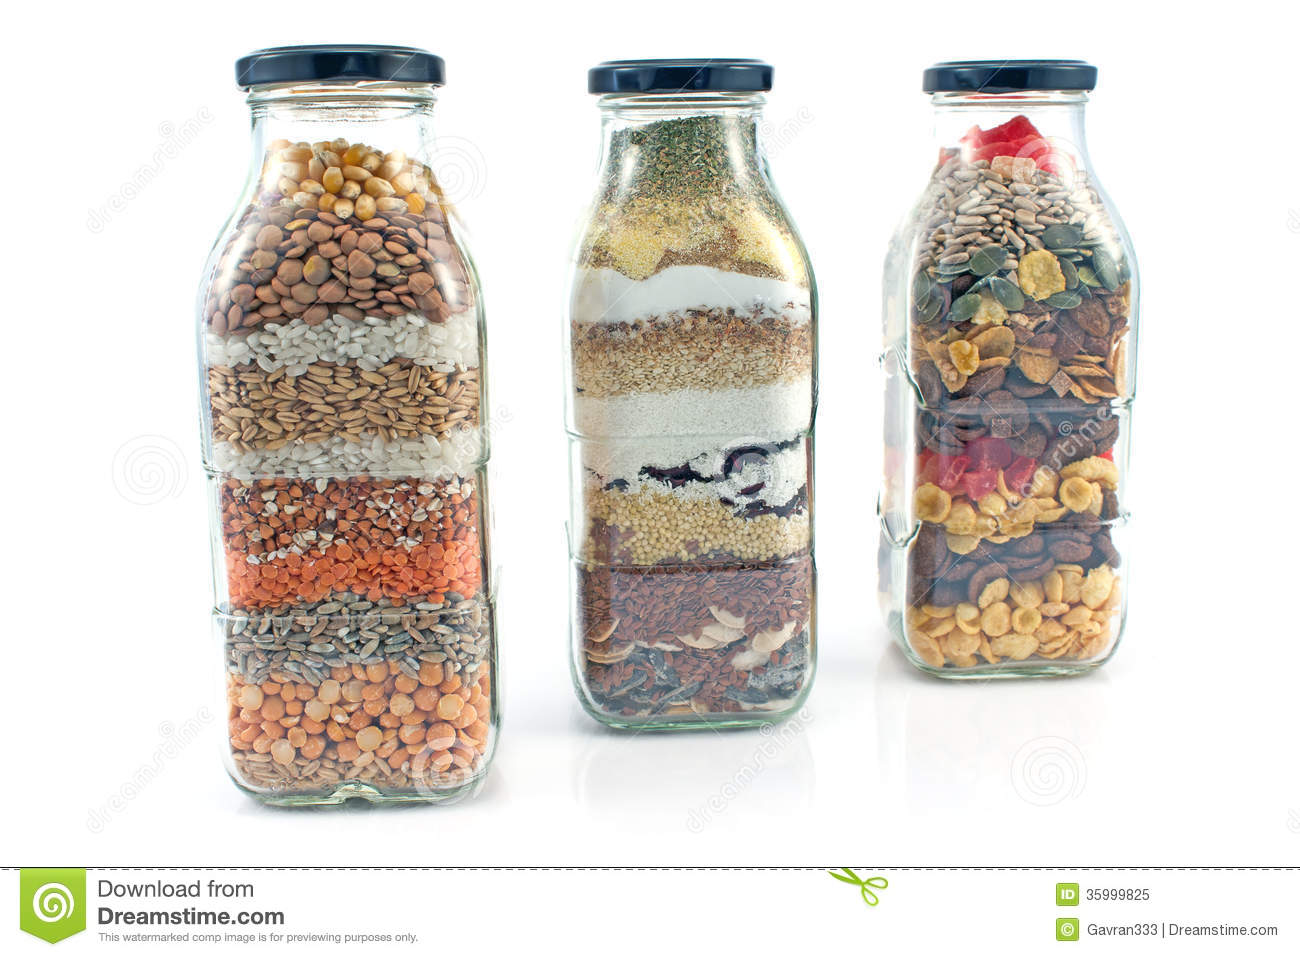 Ornamental bottles - Decorative Glass Bottles With Seeds Royalty Free Stock Photo